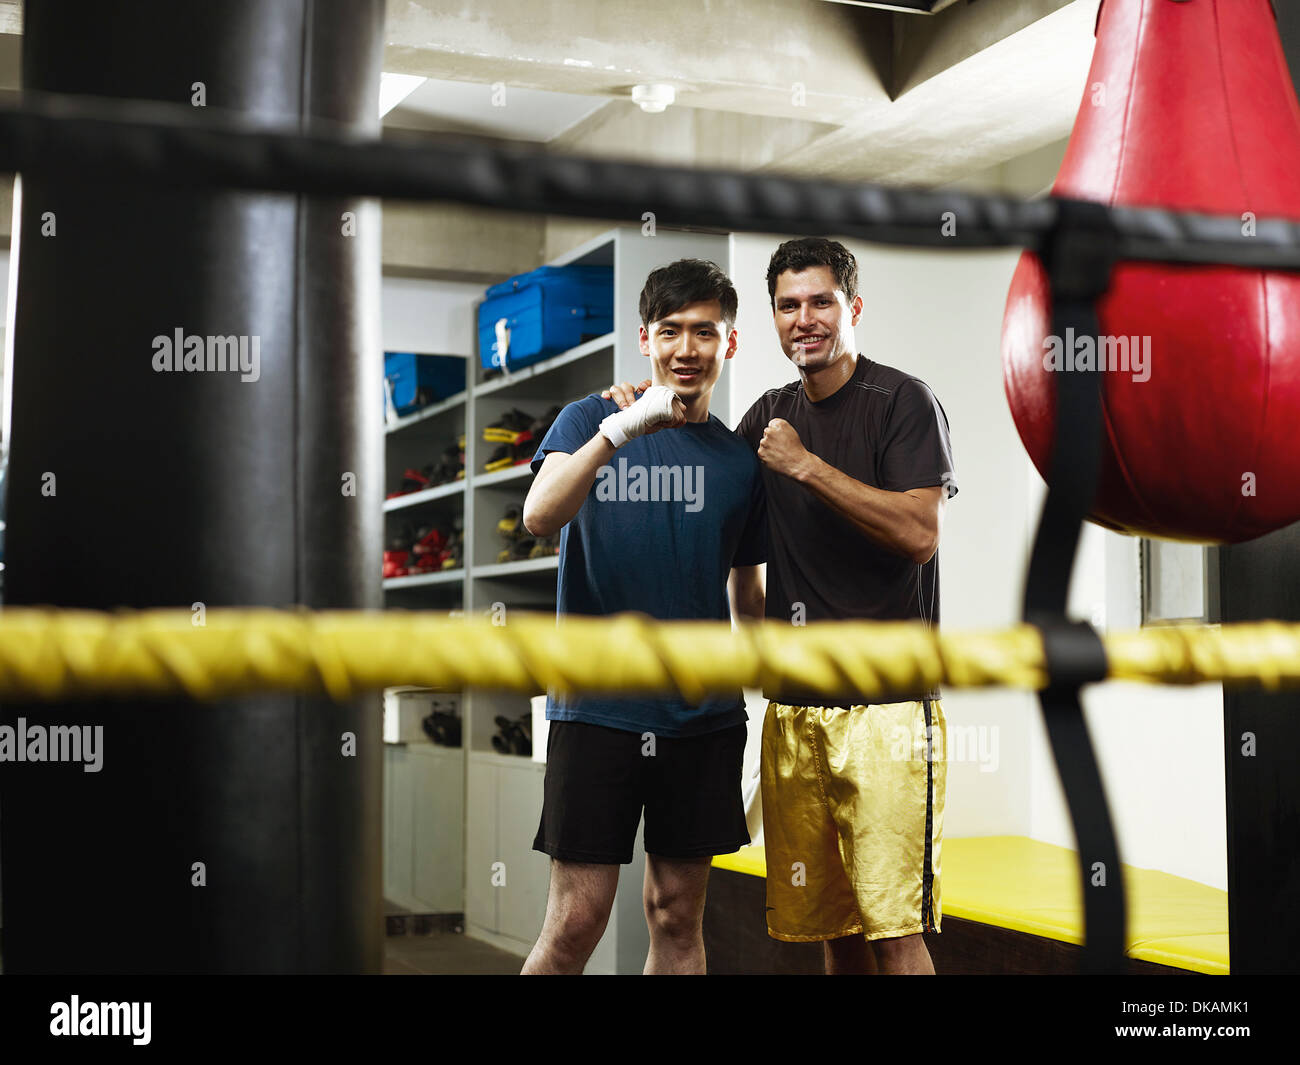 Boxers in changing room with clenched fists - Stock Image